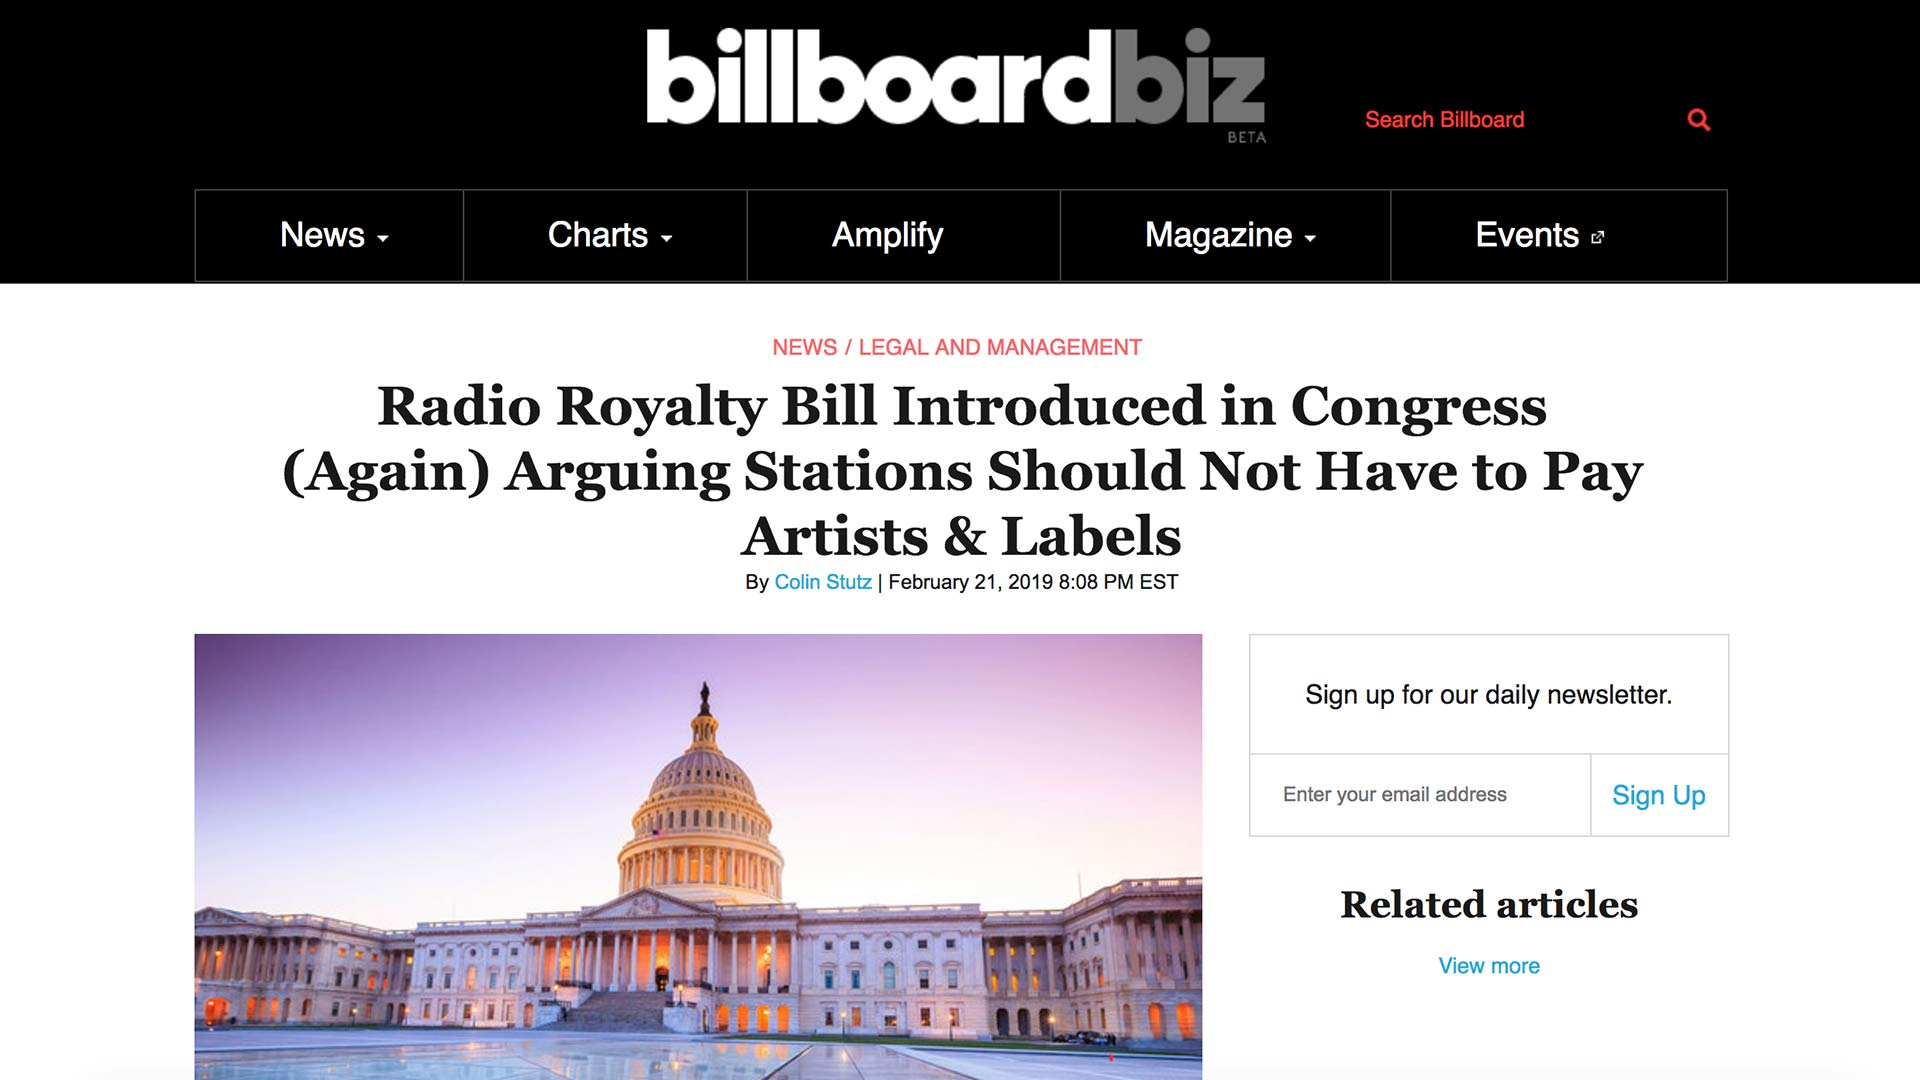 Fairness Rocks News Radio Royalty Bill Introduced in Congress (Again) Arguing Stations Should Not Have to Pay Artists & Labels